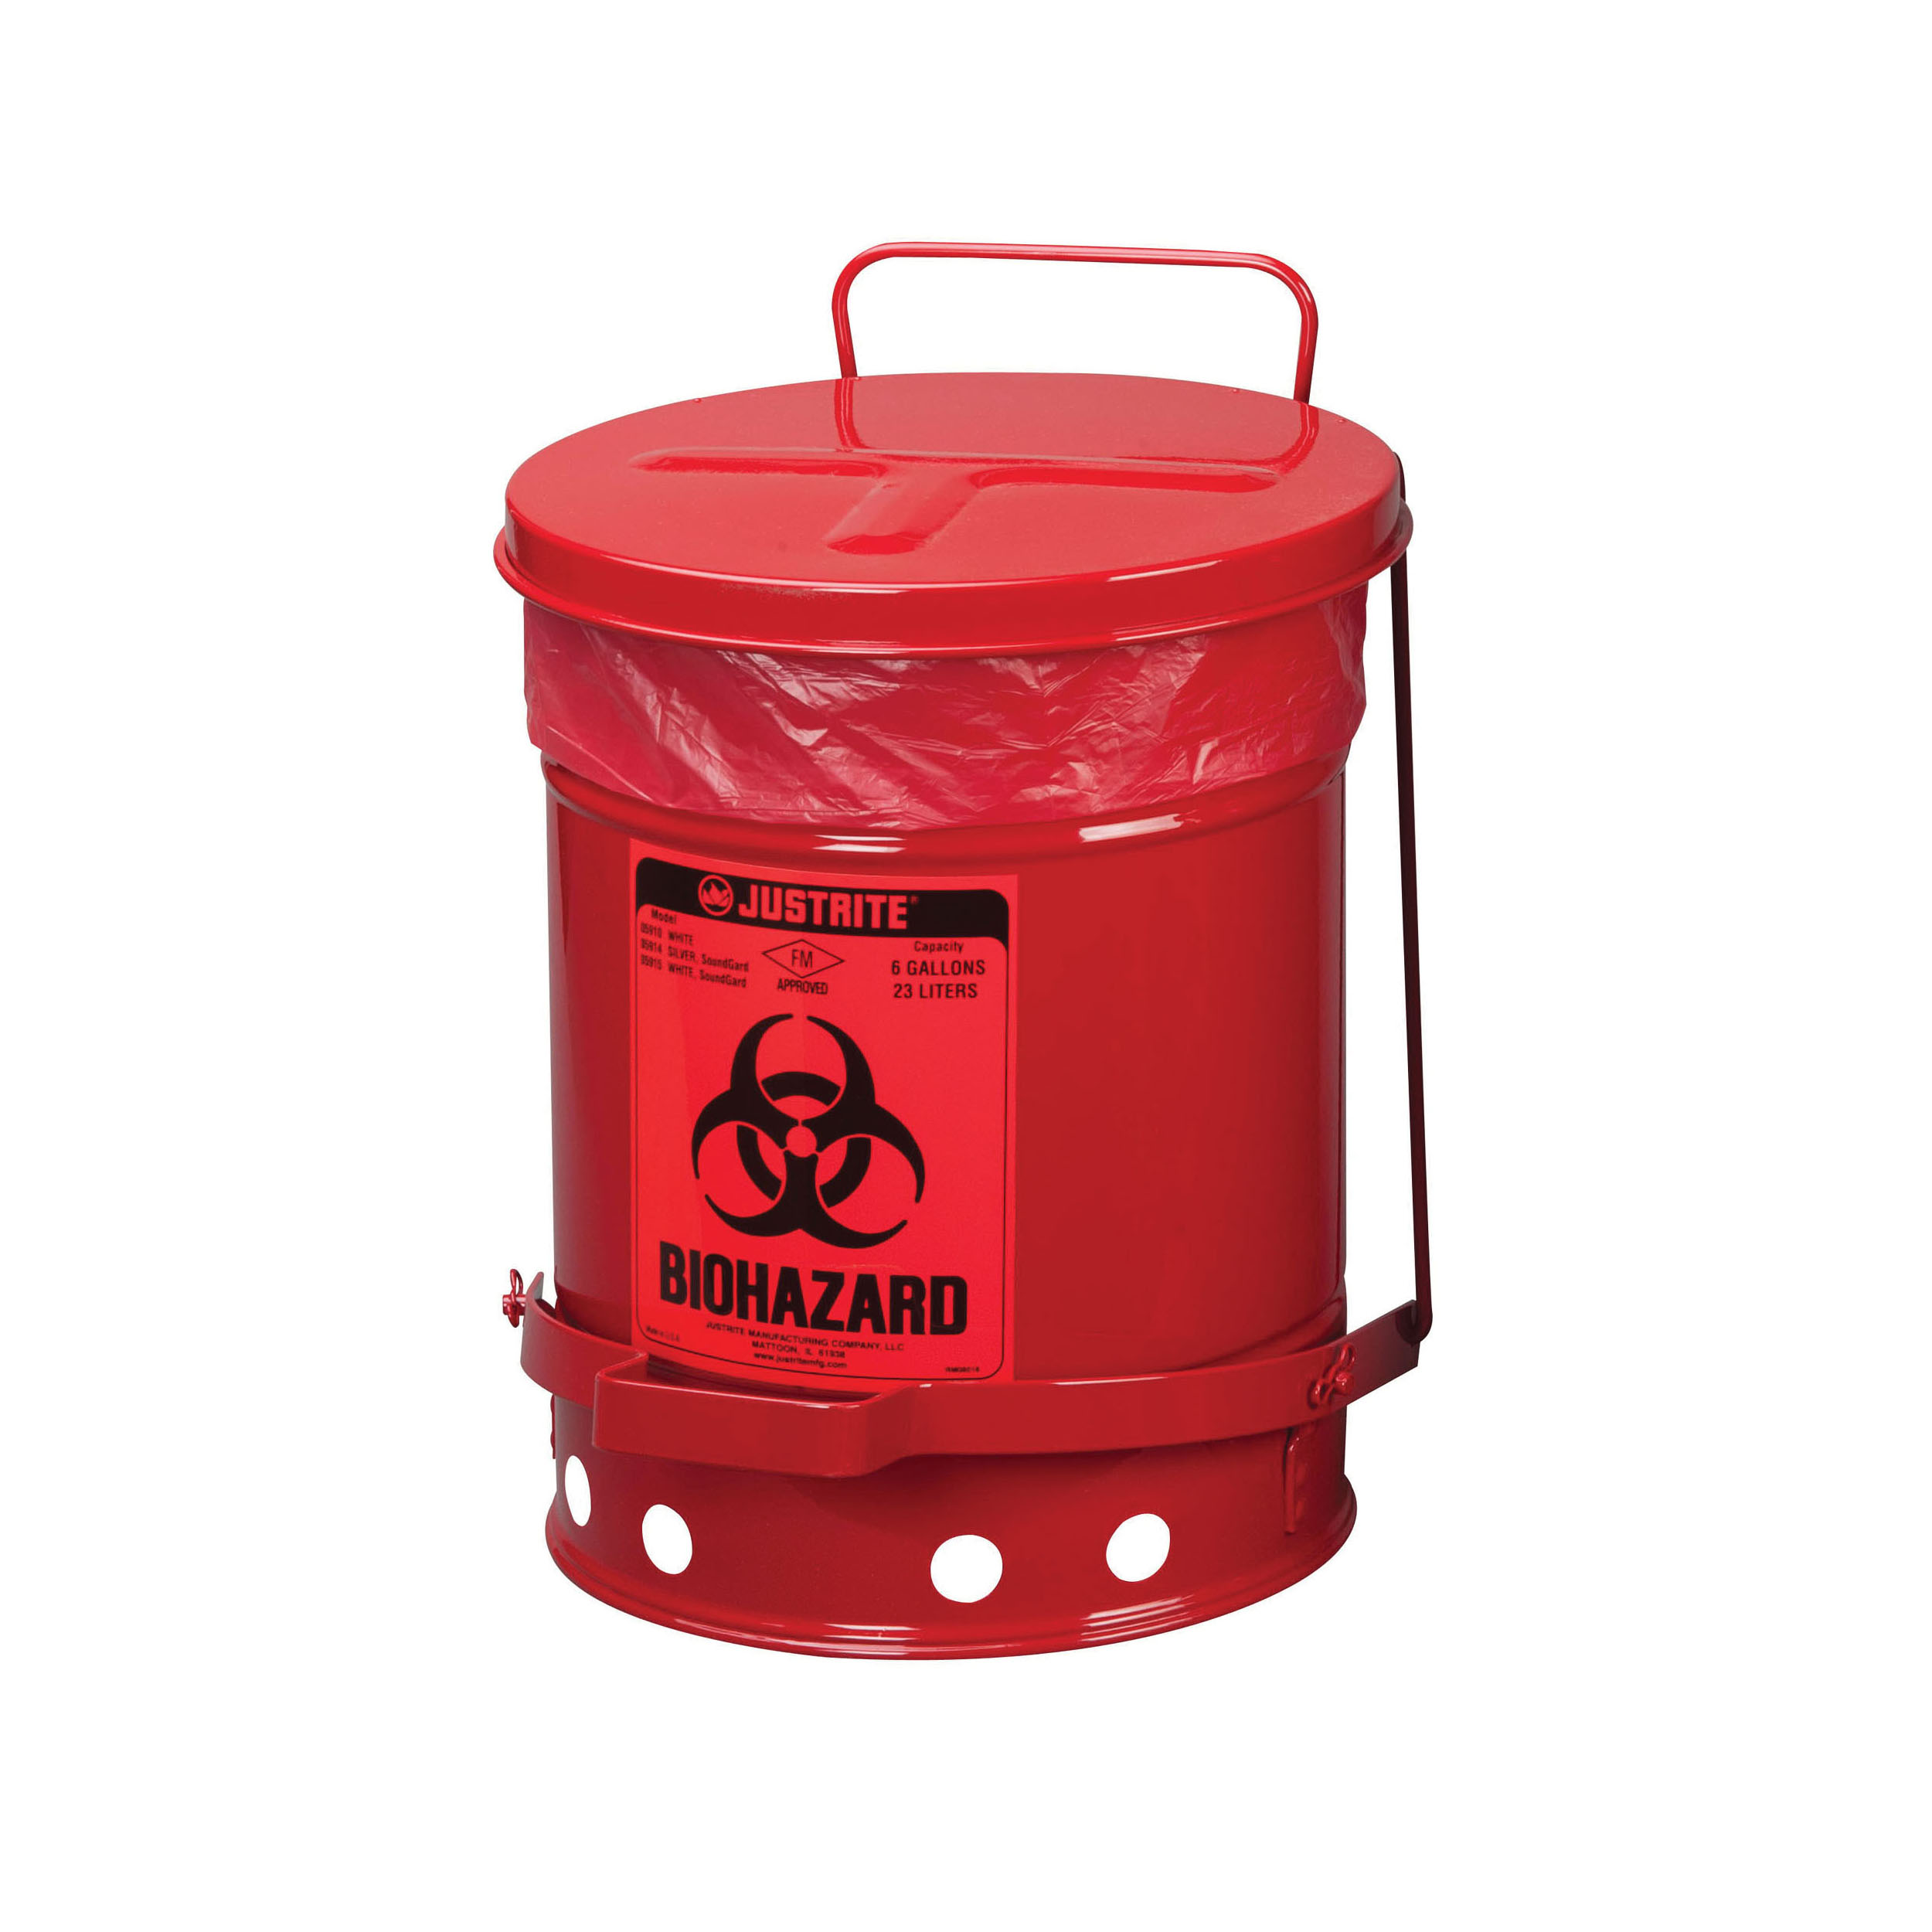 Justrite® 05910R Biohazard Waste Can, 6 gal Capacity, 15.866 in Dia, 15-7/8 in H, Steel, Red, FM Approved, TUV Approved, OSHA 29 CFR 1910.1030